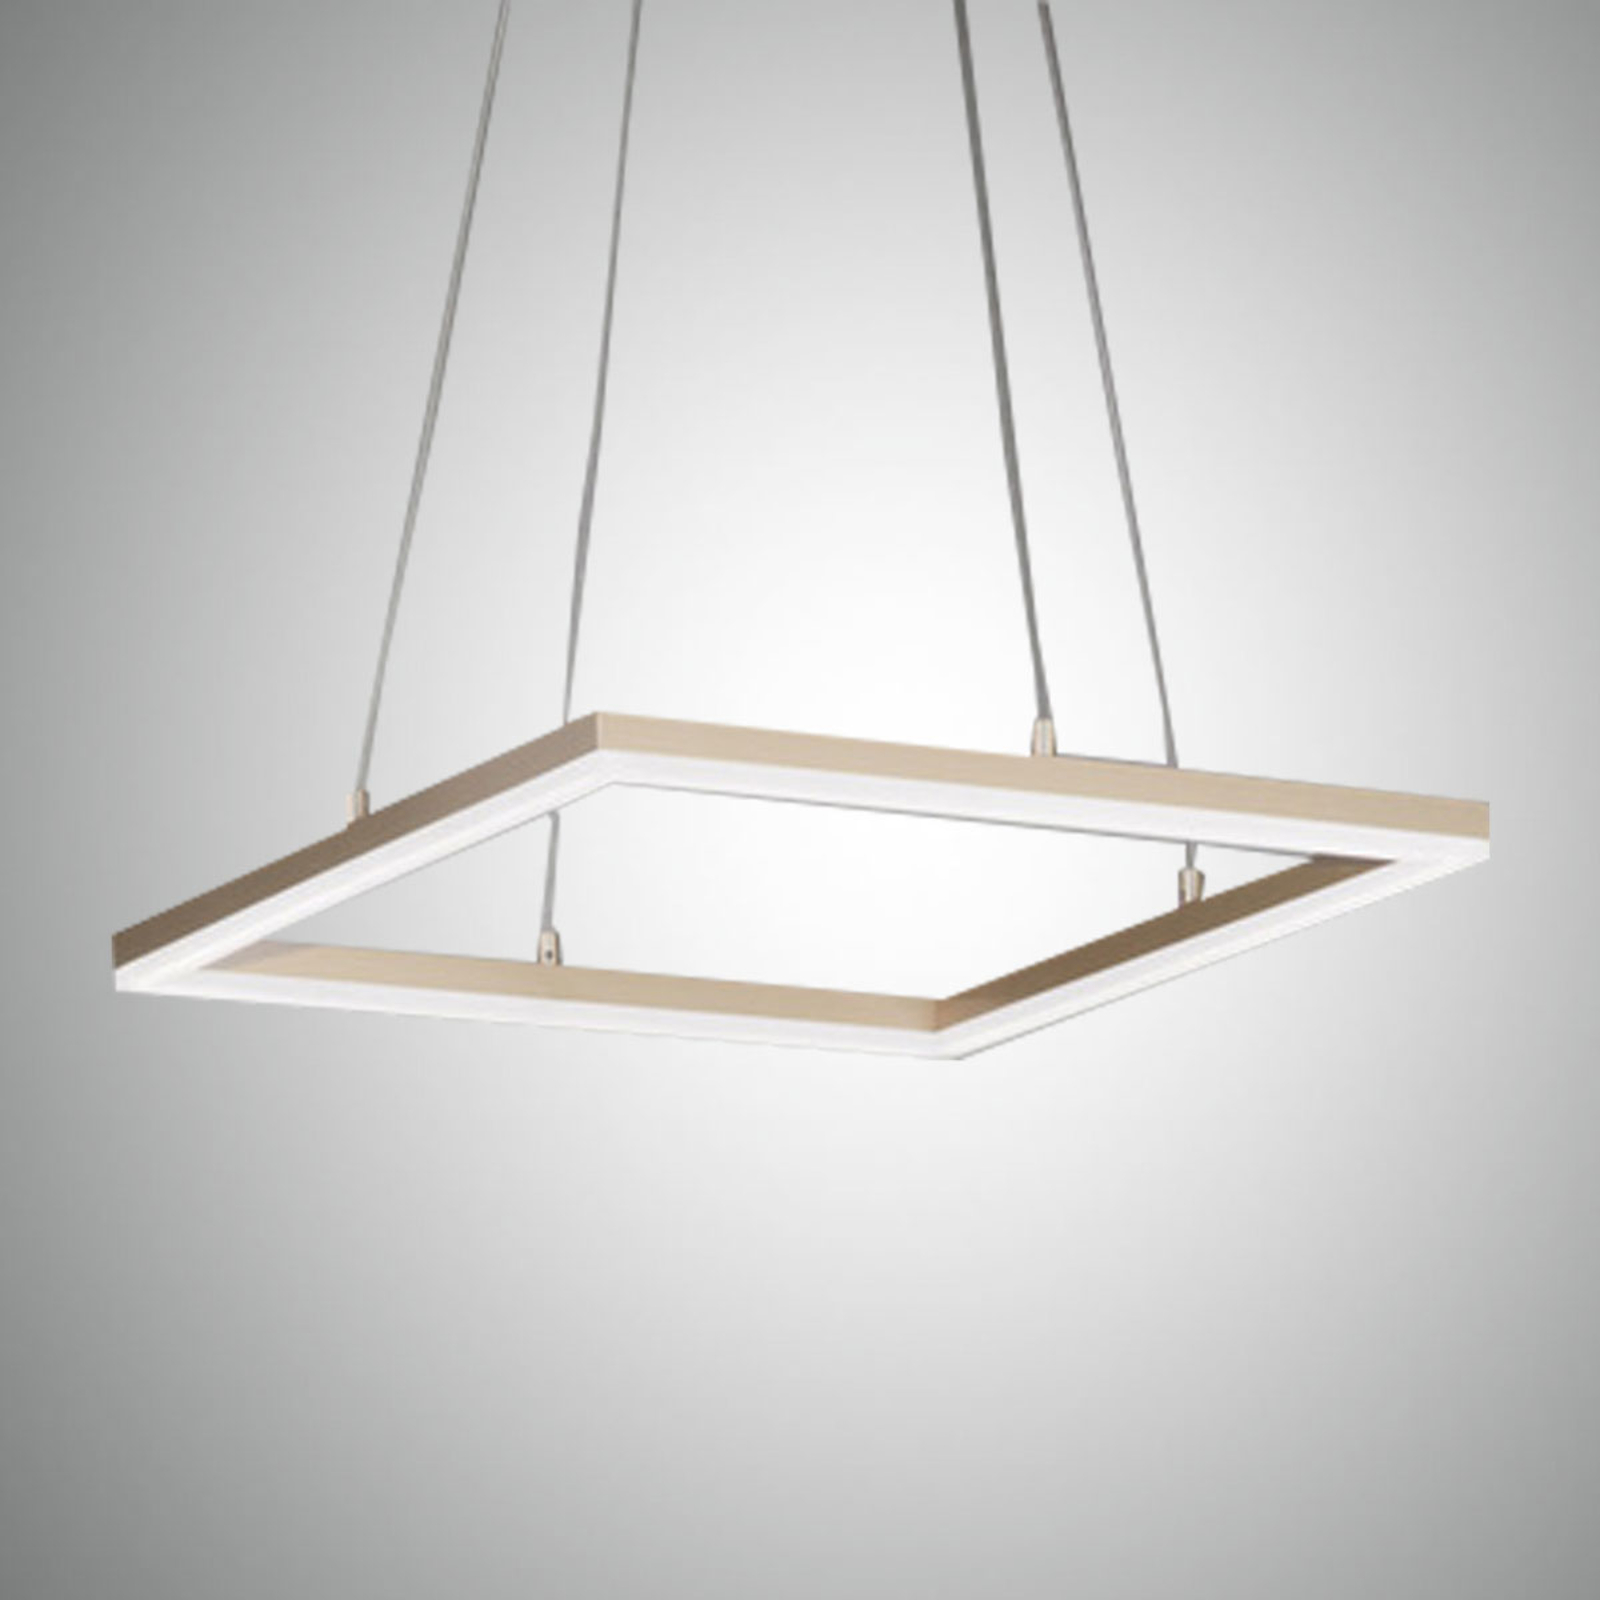 LED hanglamp Bard, 42x42cm in matgoud finish